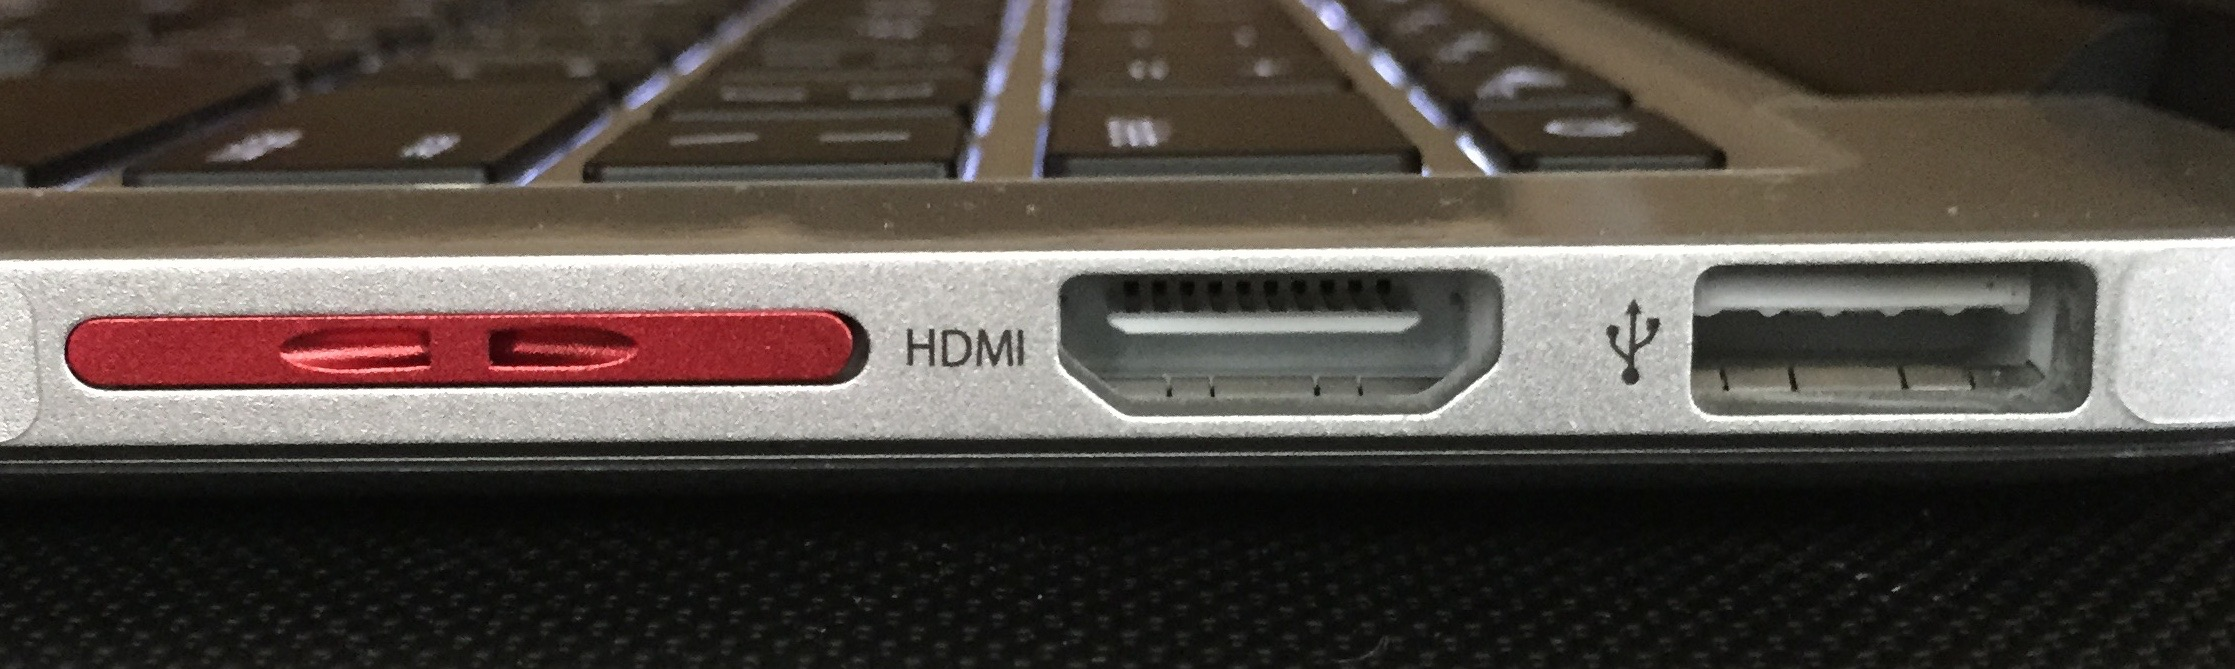 Install Ubuntu 15 04 to a Micro SD Card on a MacBook Pro 12